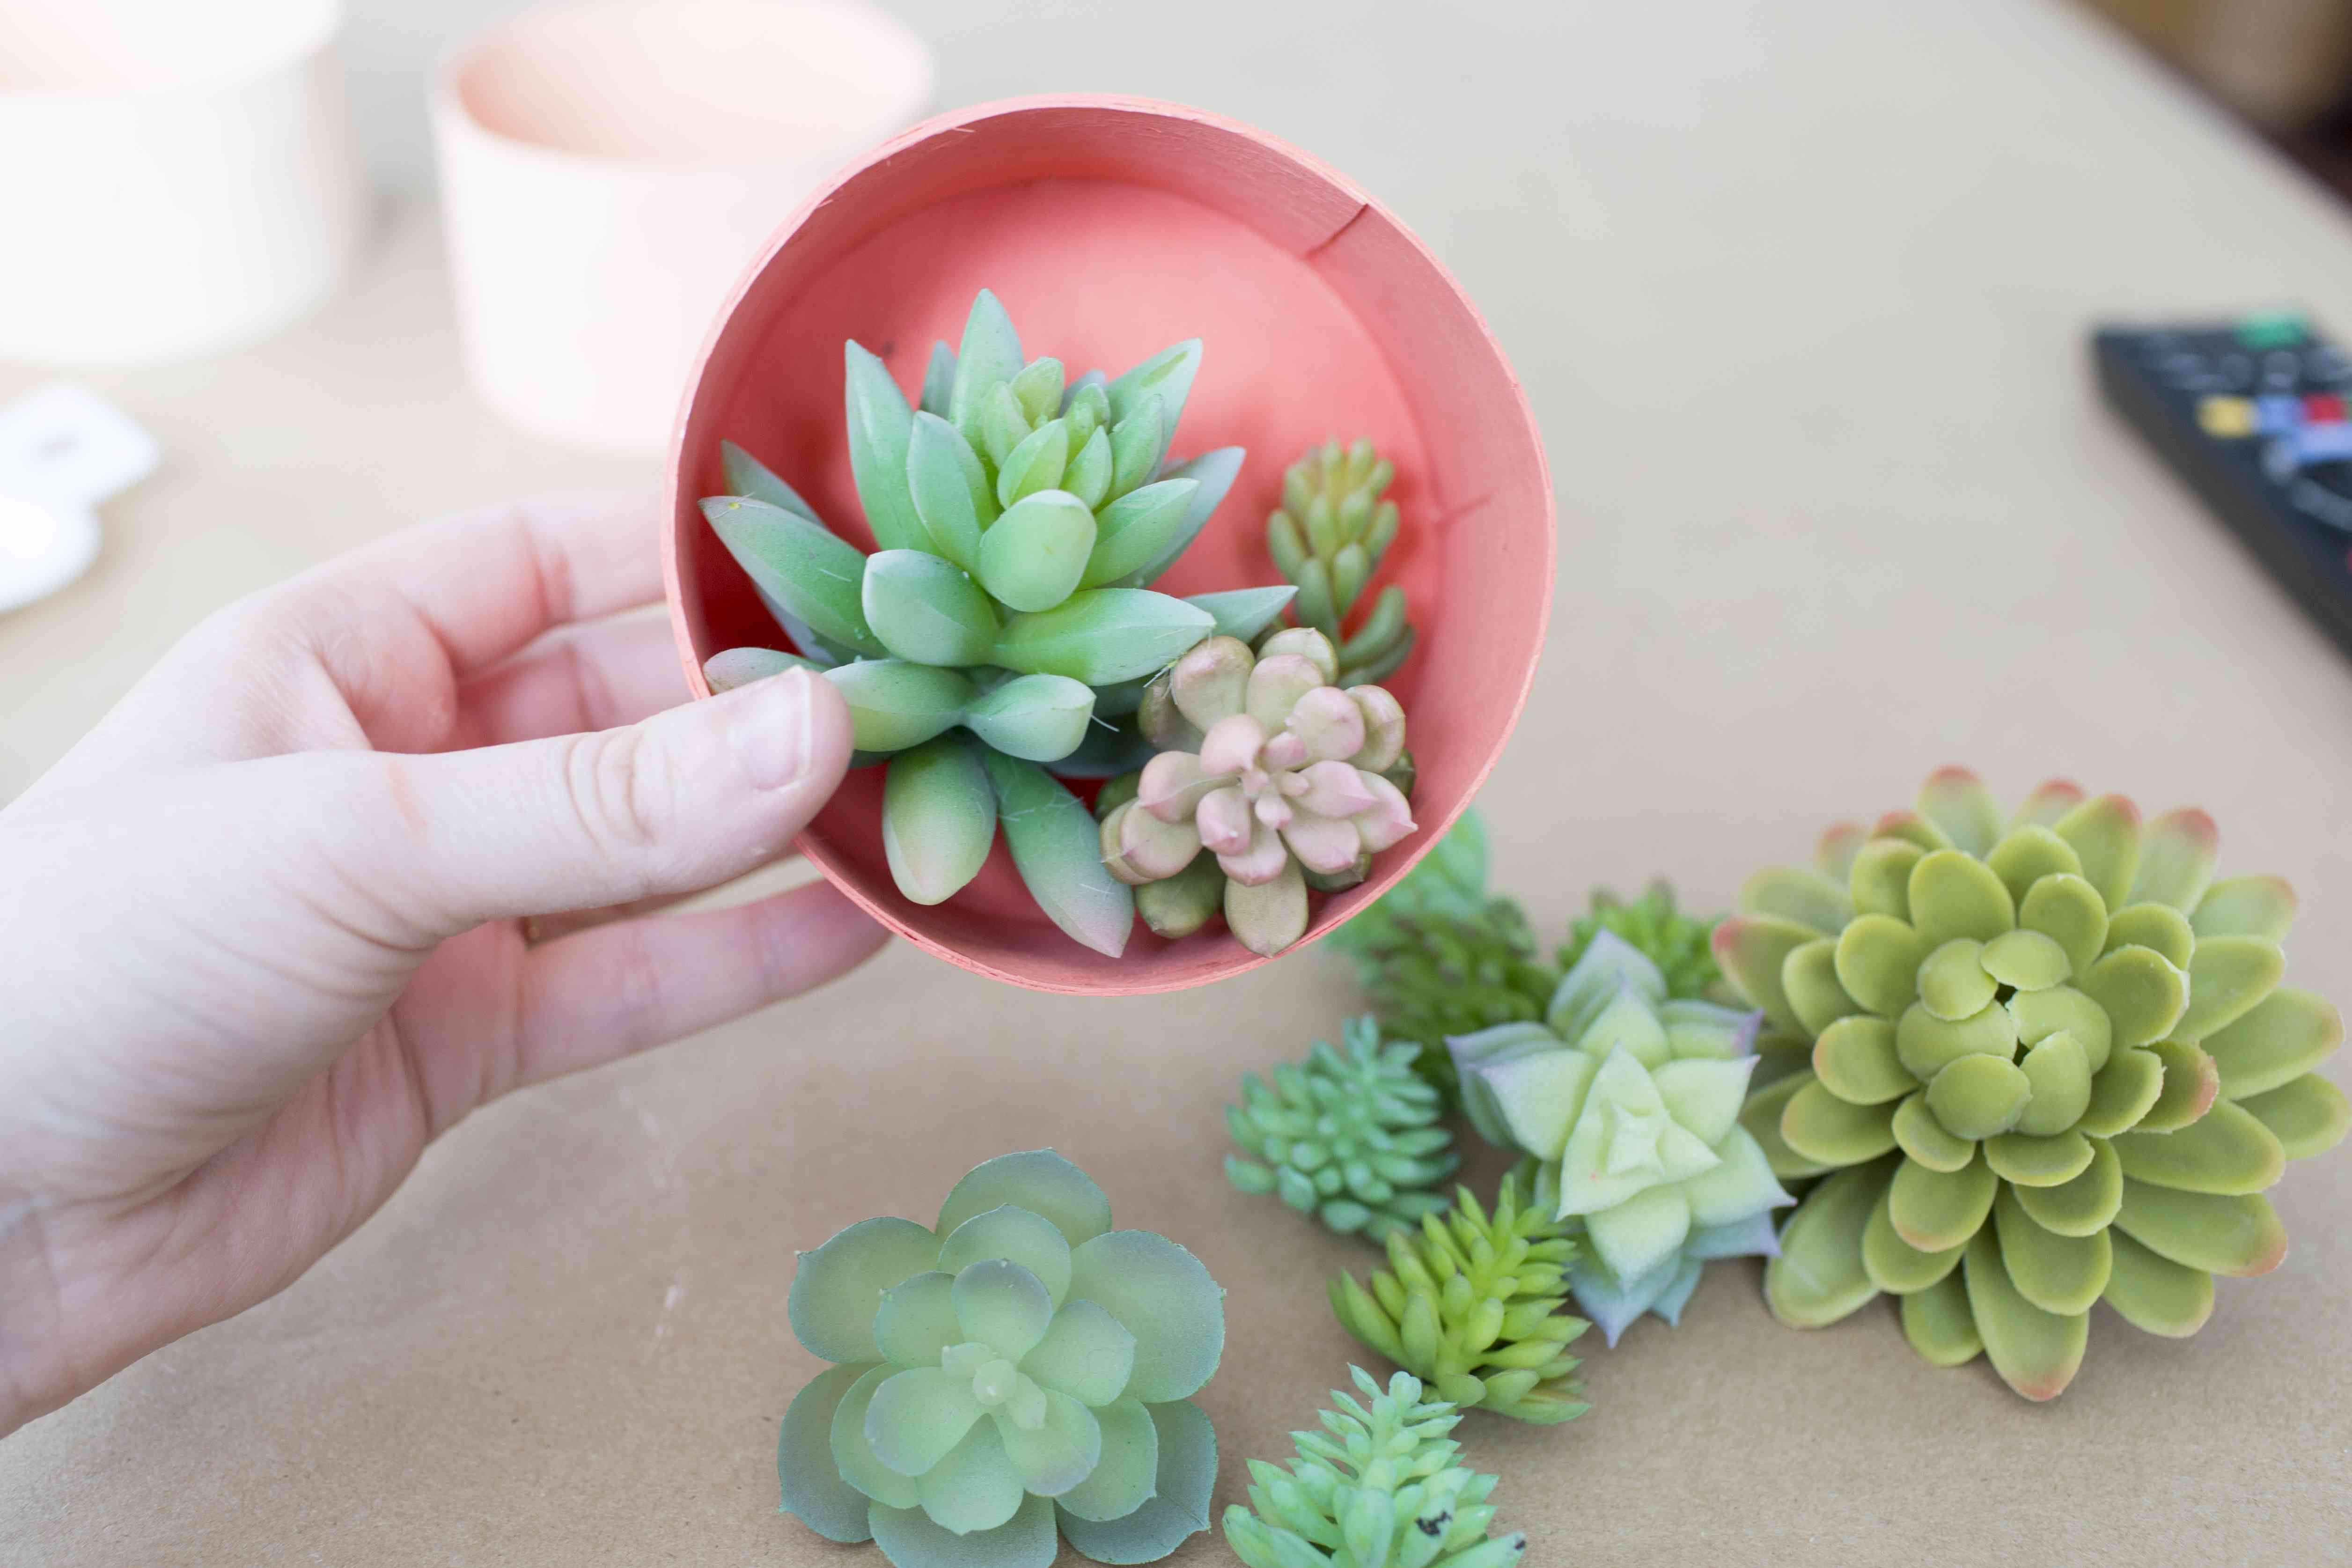 Plan out where your succulents should go within each container